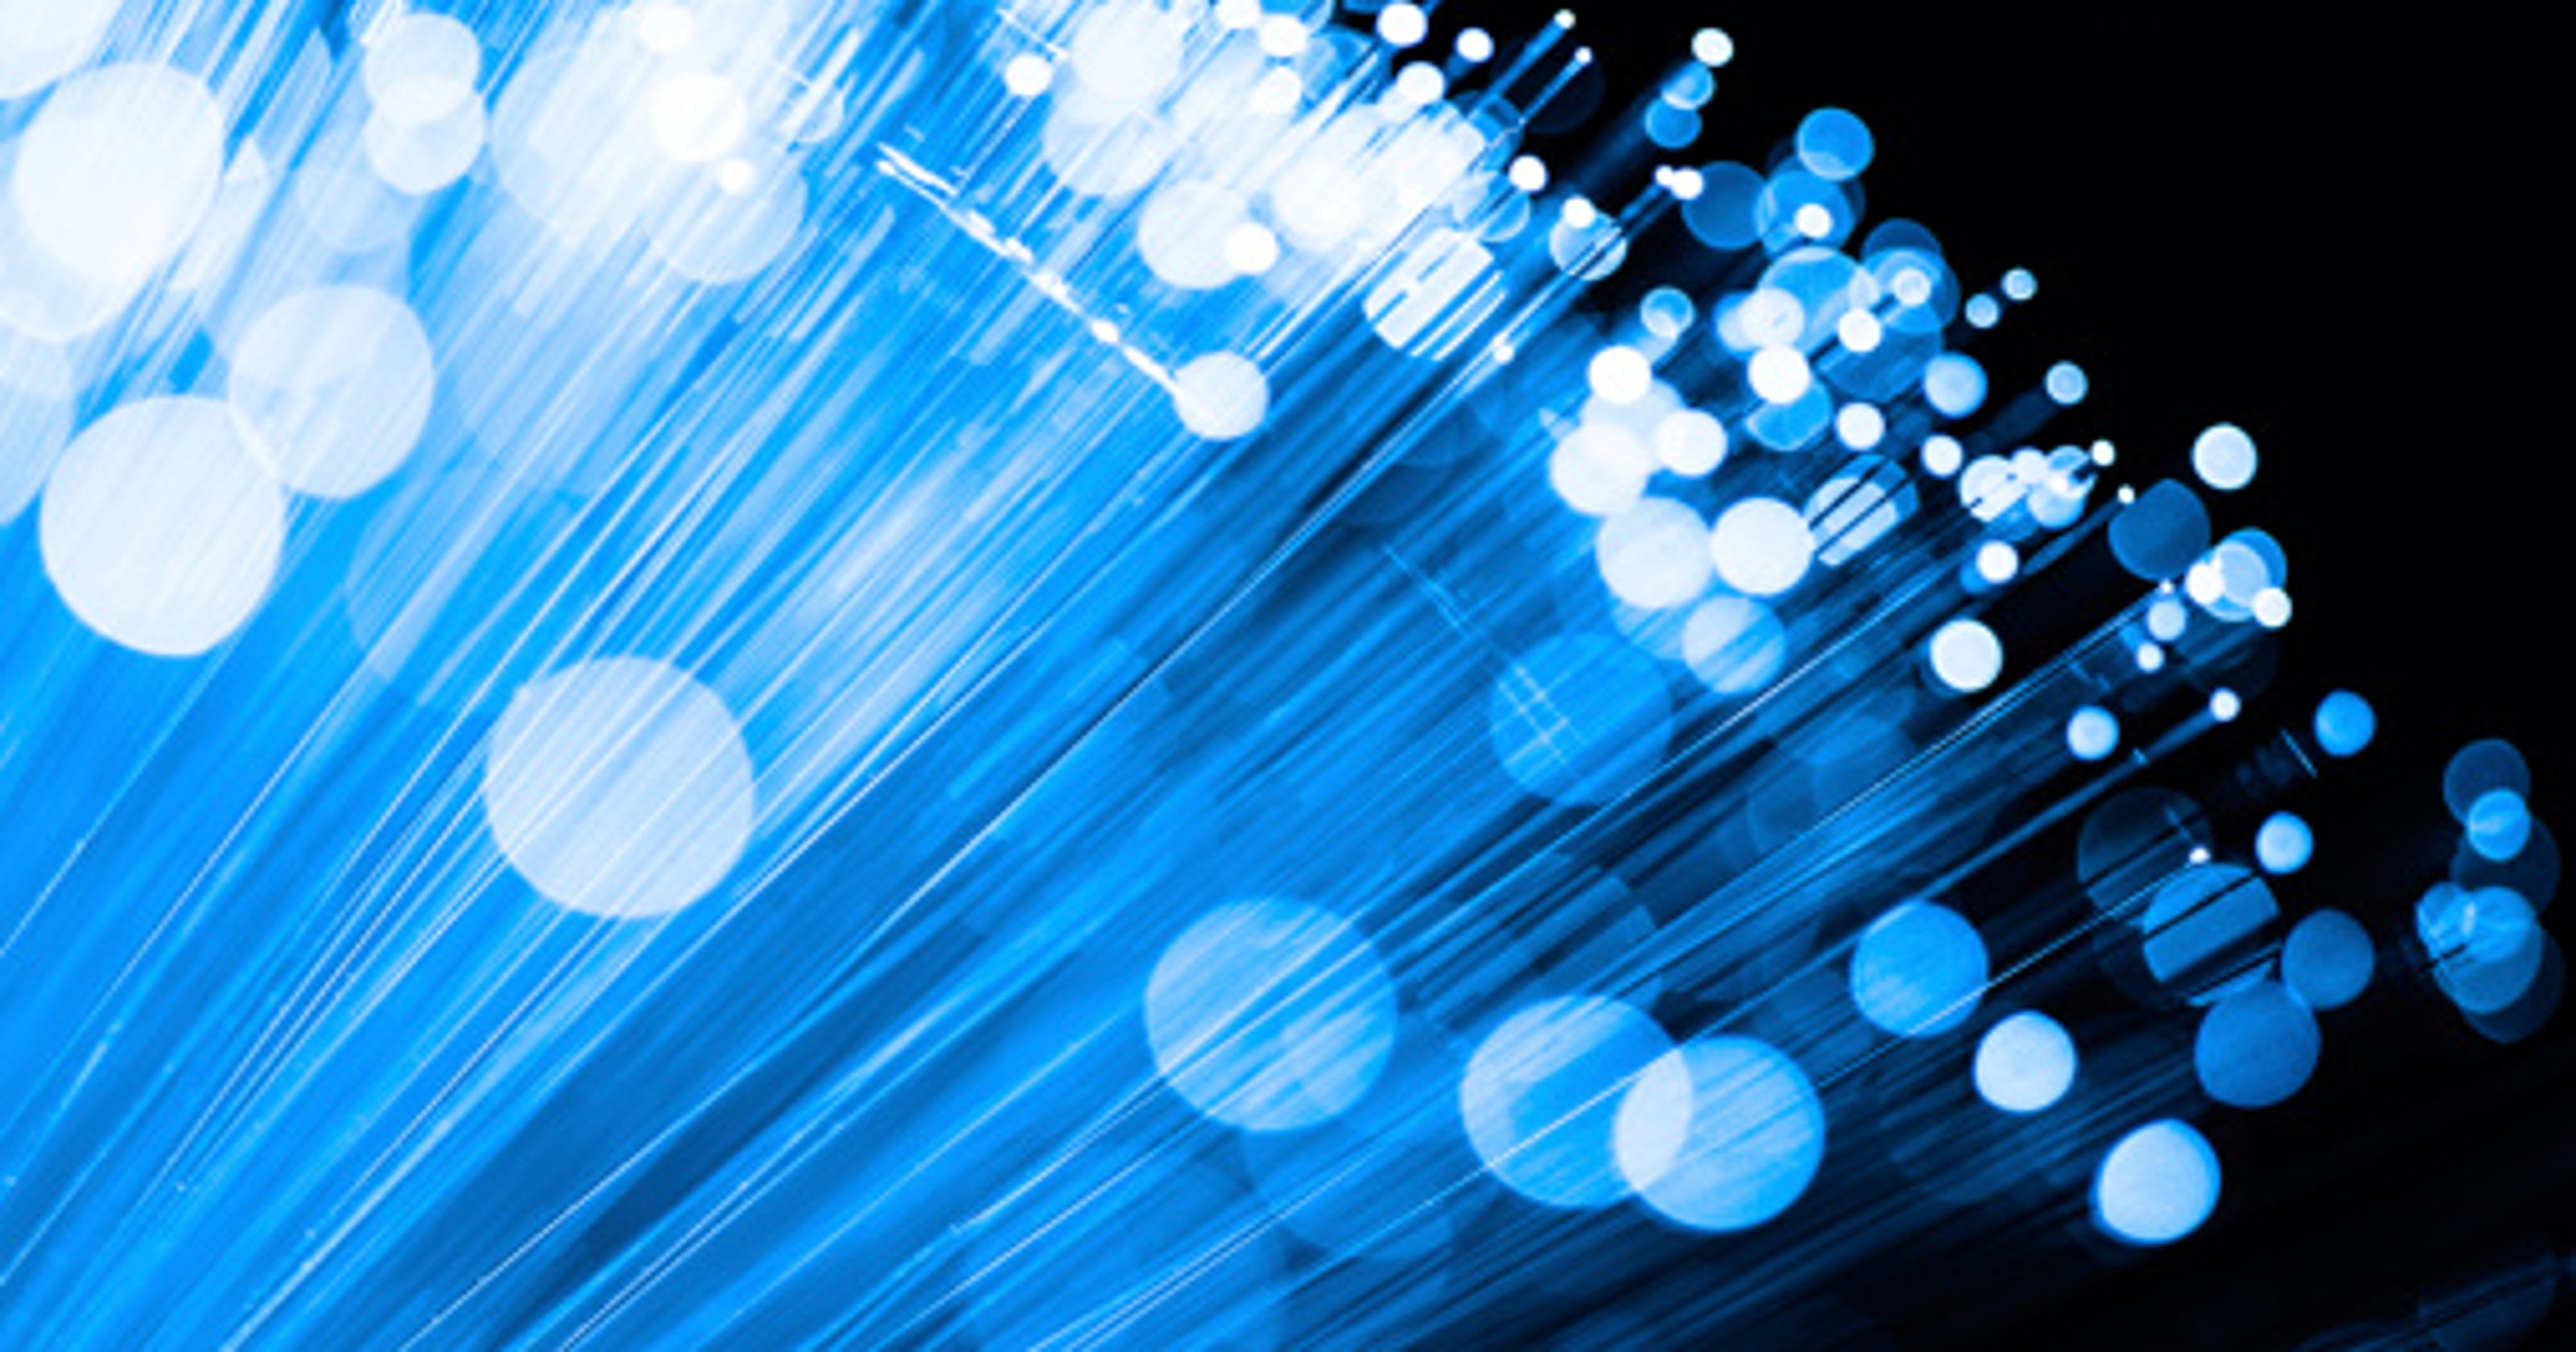 Local Fiber Optic Network Moves Closer To Reality Optics And Circuit Board Hd 00 10 Communications